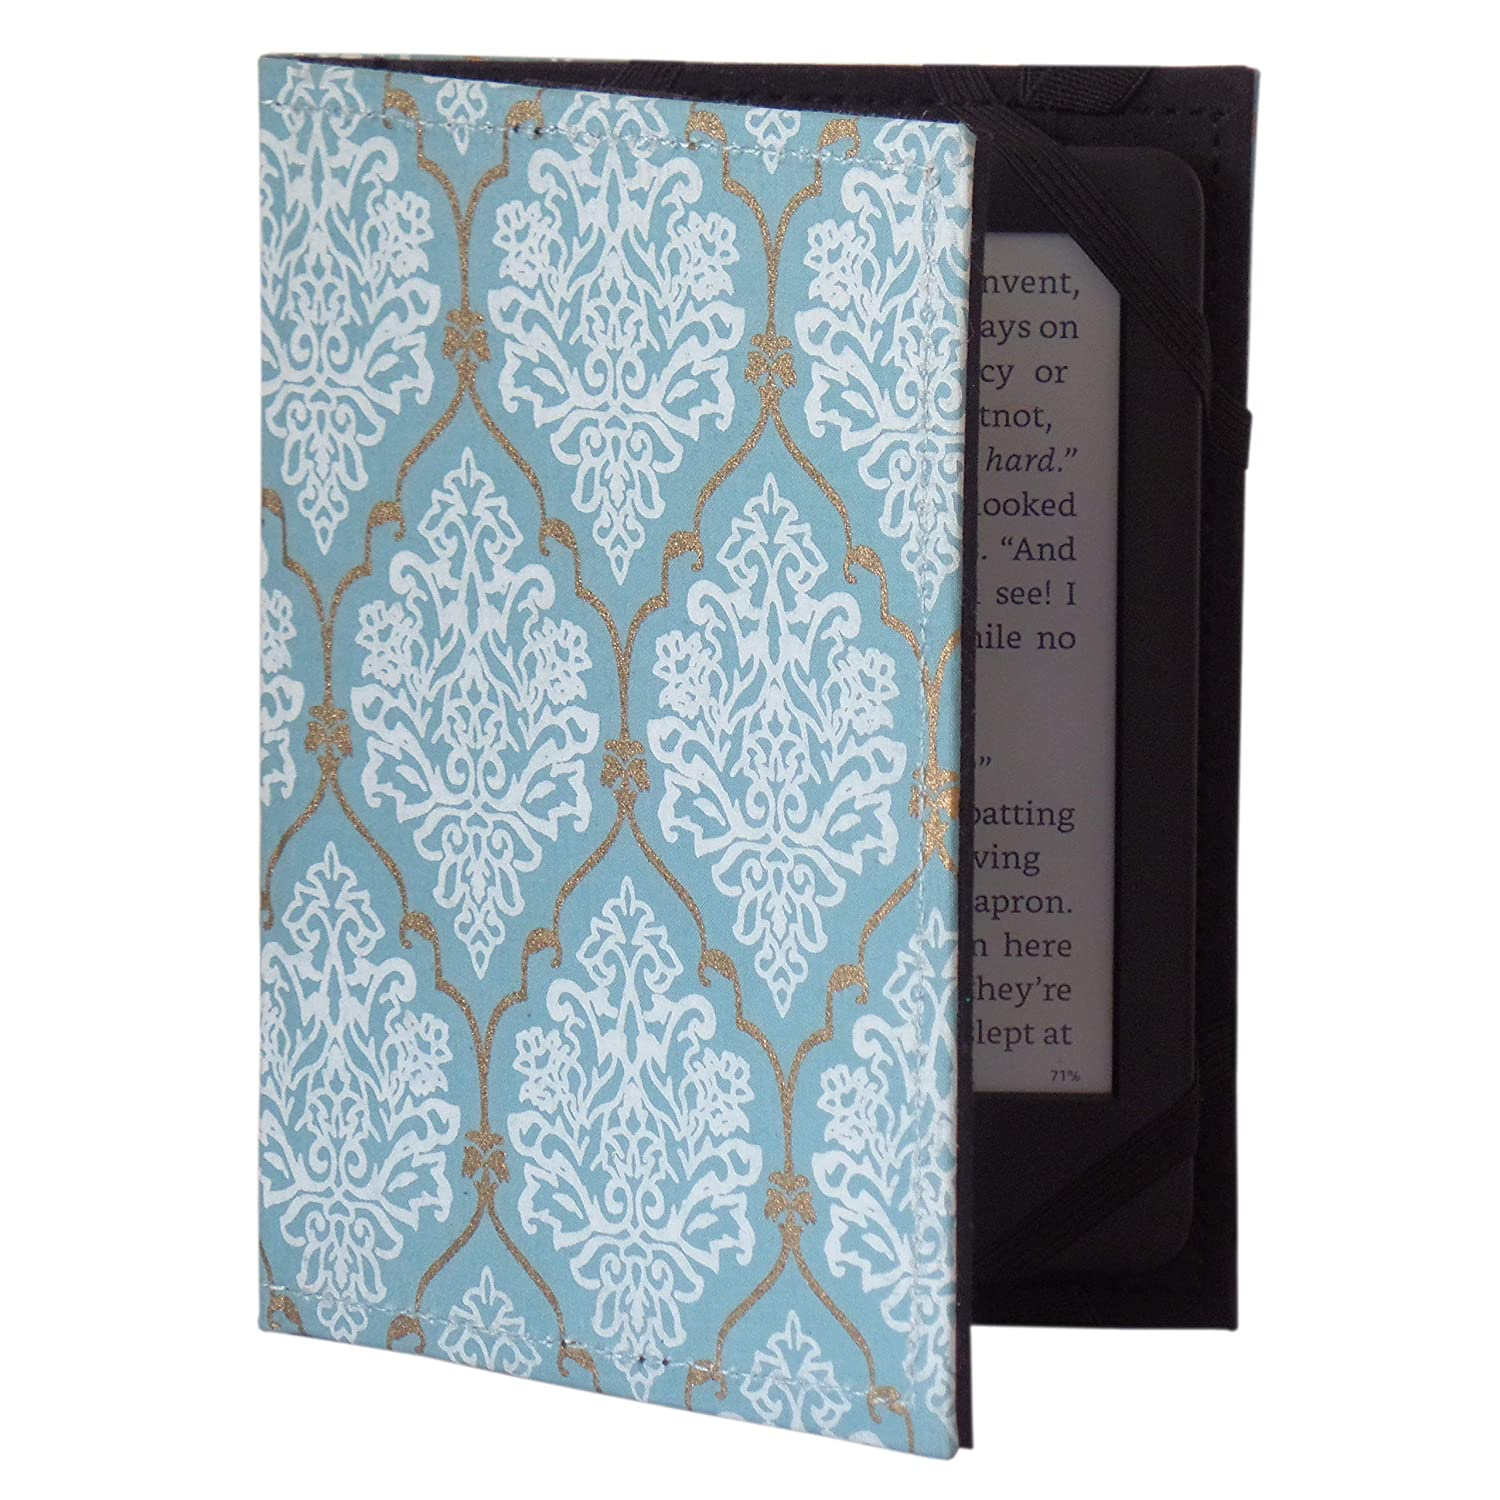 Jaipur Classic Cotton/Paper Kindle Case Cover, (fits Kindle Paperwhite, Kindle, and Kindle Touch) (Blue 45)